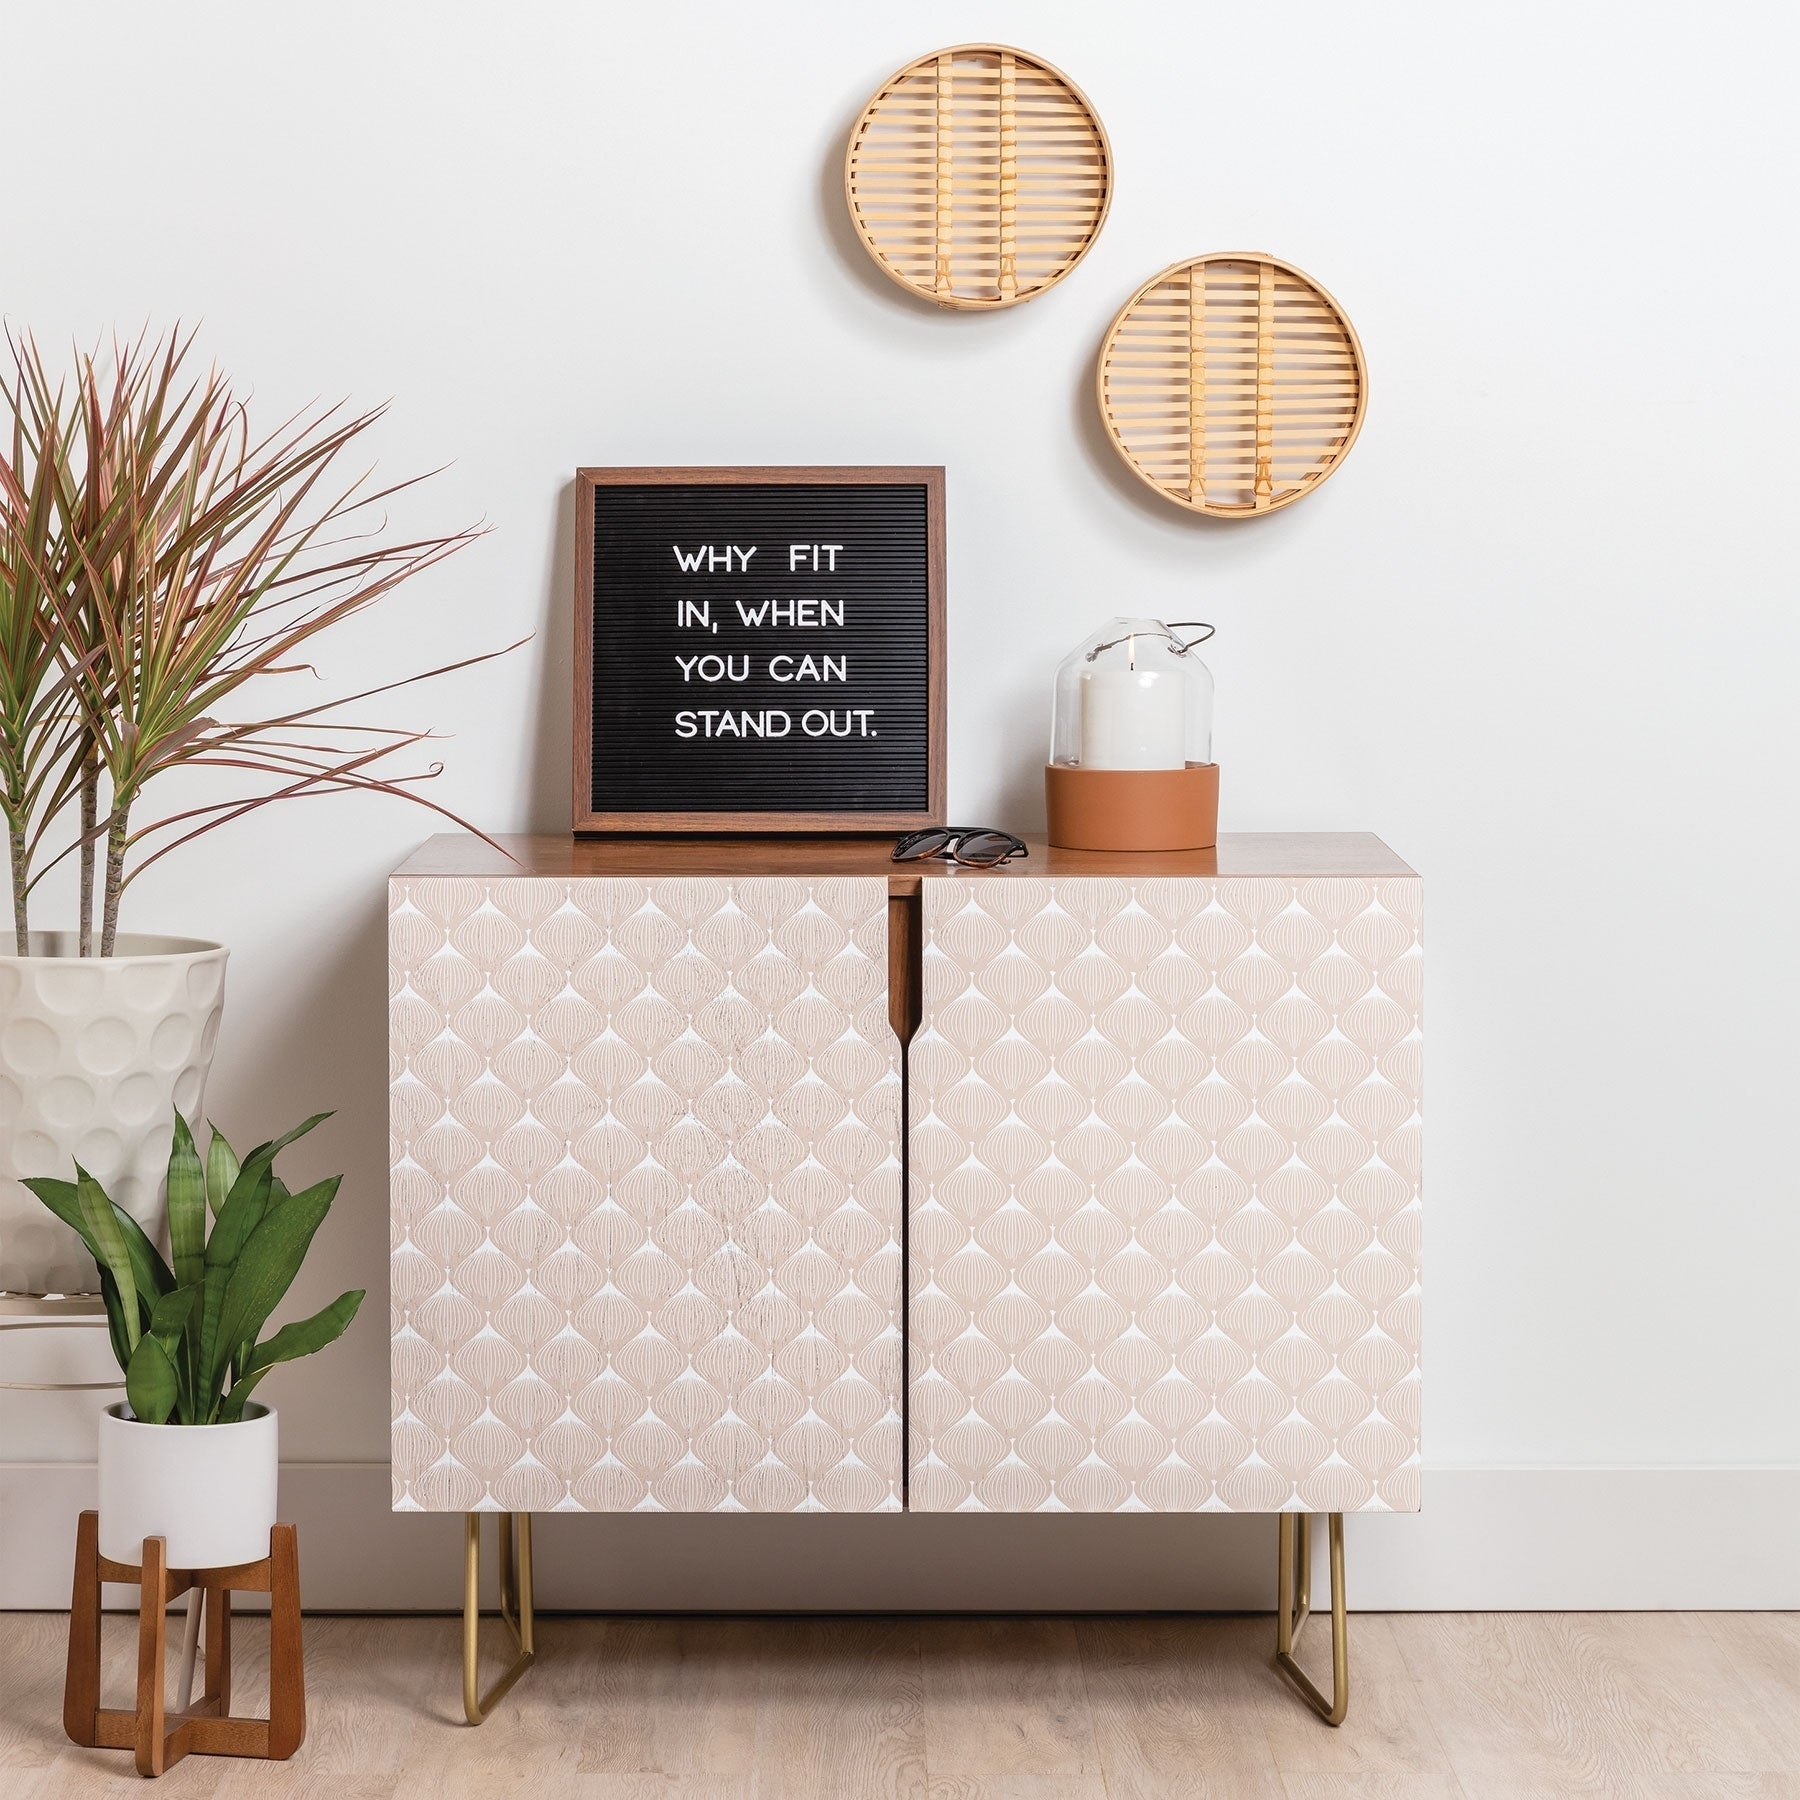 Deny Designs Pale Pink Bulbs Credenza (Birch Or Walnut, 2 Leg Options) Throughout Pale Pink Bulbs Credenzas (Gallery 2 of 30)